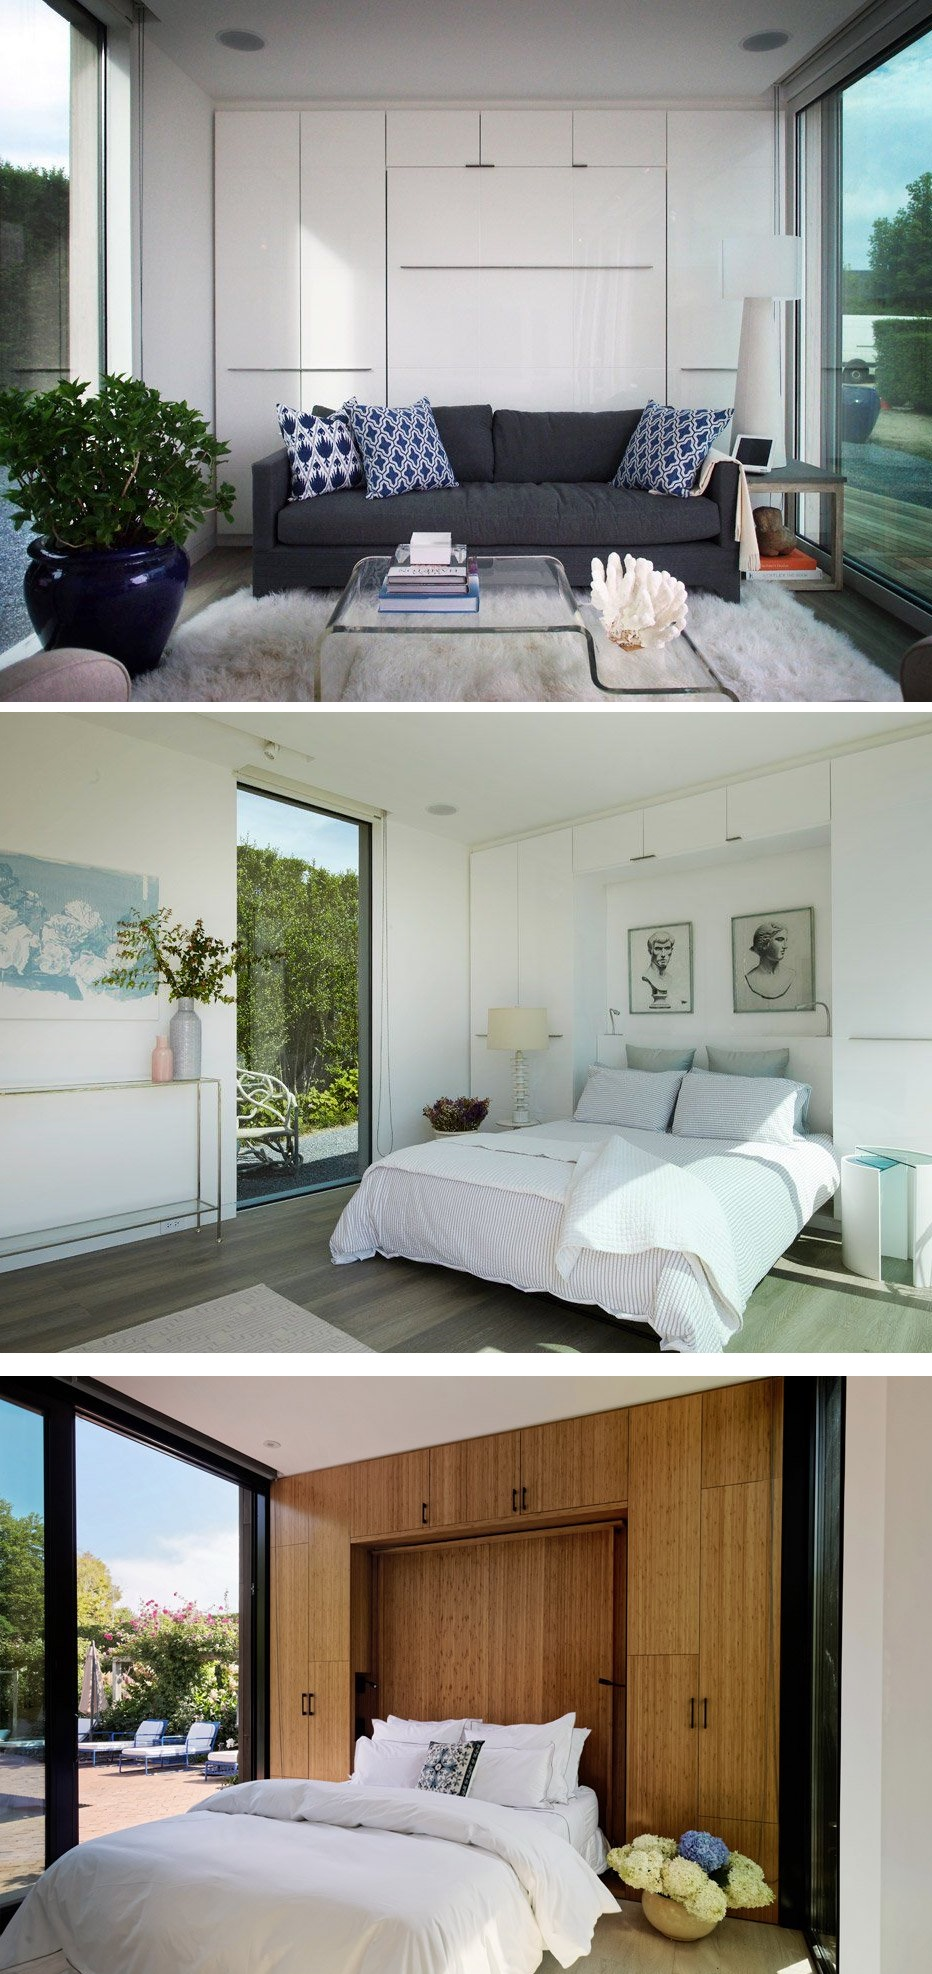 Space saving wall beds that made their way into stylish decors view in gallery wall beds amipublicfo Choice Image